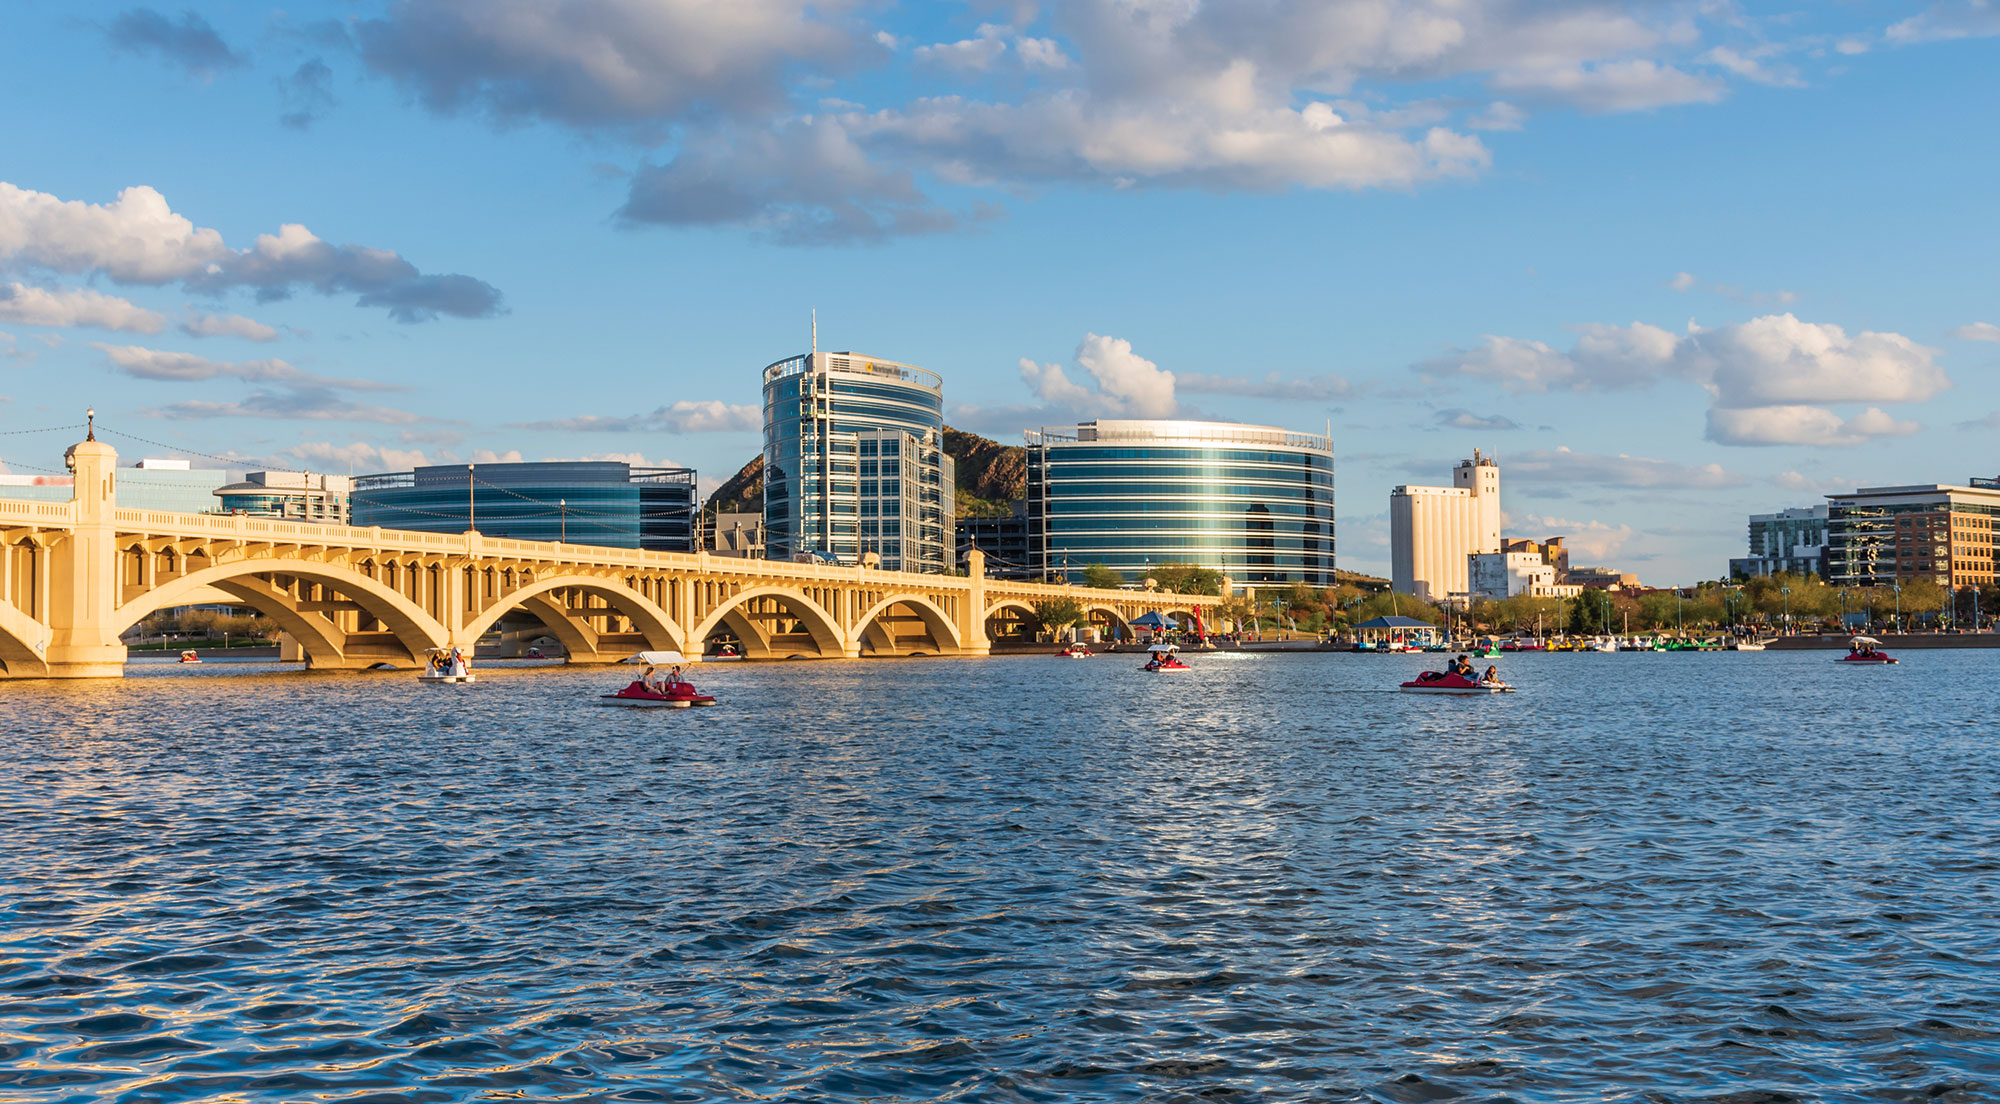 Paddleboats on Tempe Town Lake; Photo courtesy Adobe Stock Images